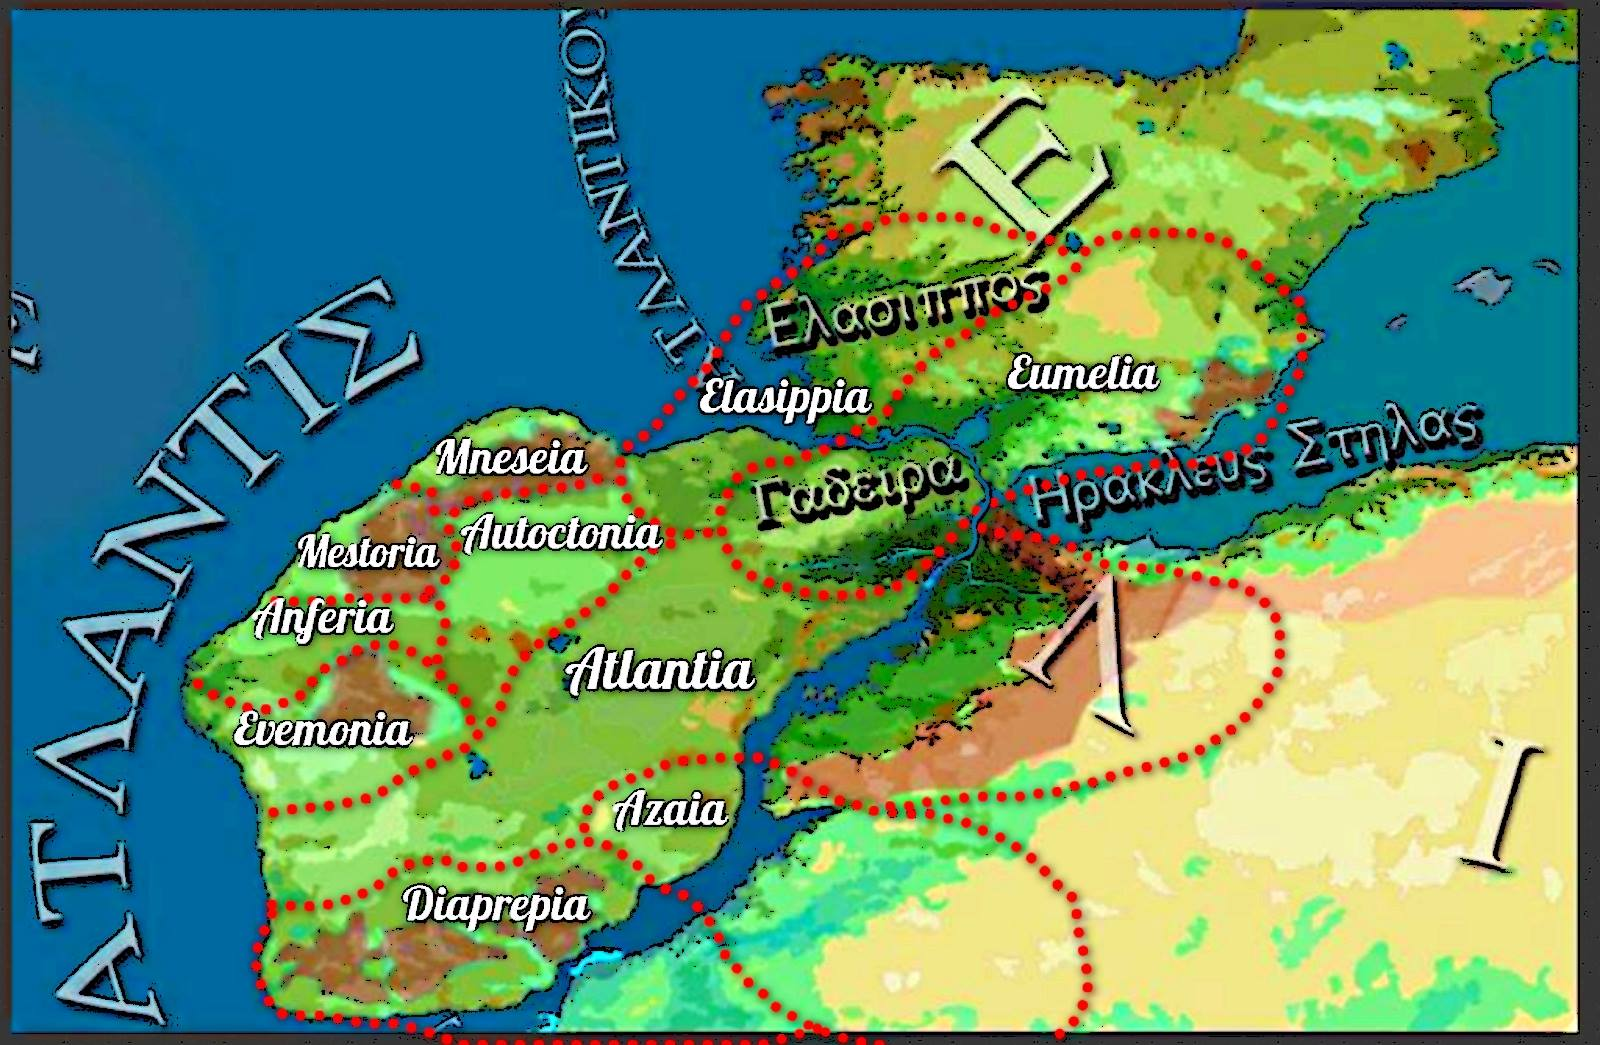 Ubicación geográfica de la Atlántida Por Georgeos Díaz-Montexano / Scientific Atlantology International Society (SAIS) / The Epigraphic Society / Historical-Scientific Atlantology Adviser for James Cameron, Simcha Jacobovici and National Geographic.